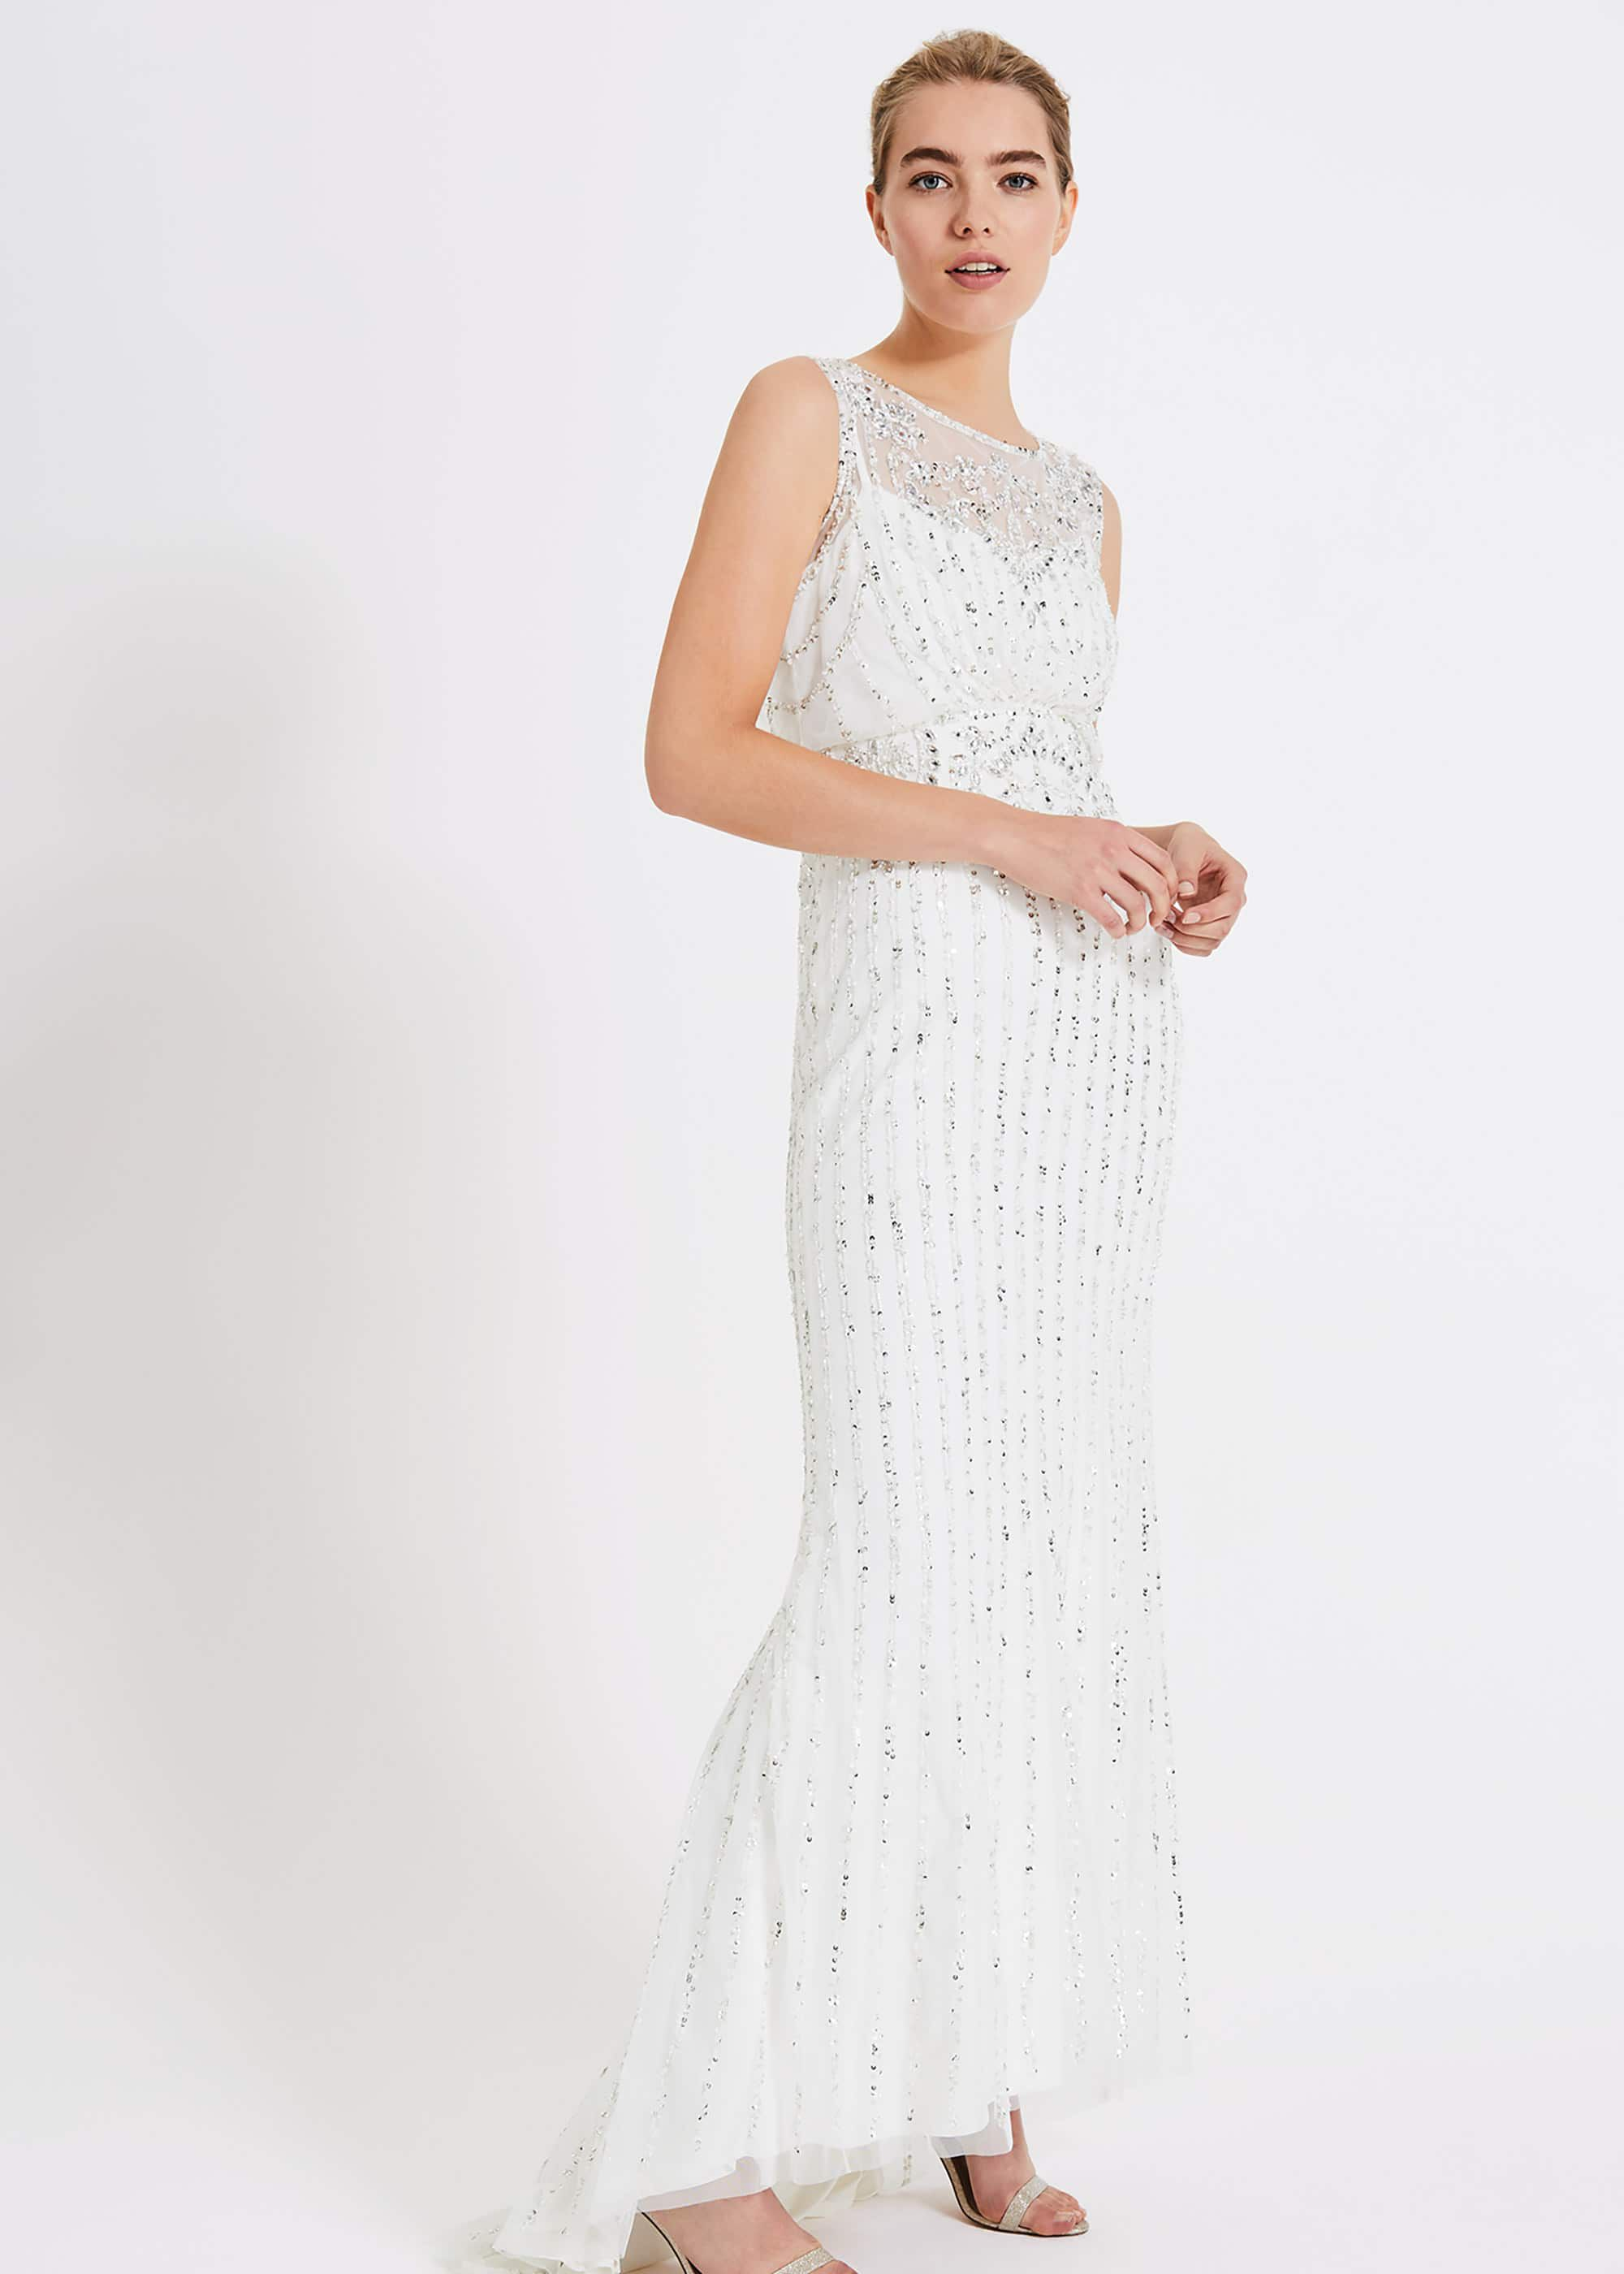 Phase Eight Milly Beaded Wedding Dress, White, Wedding